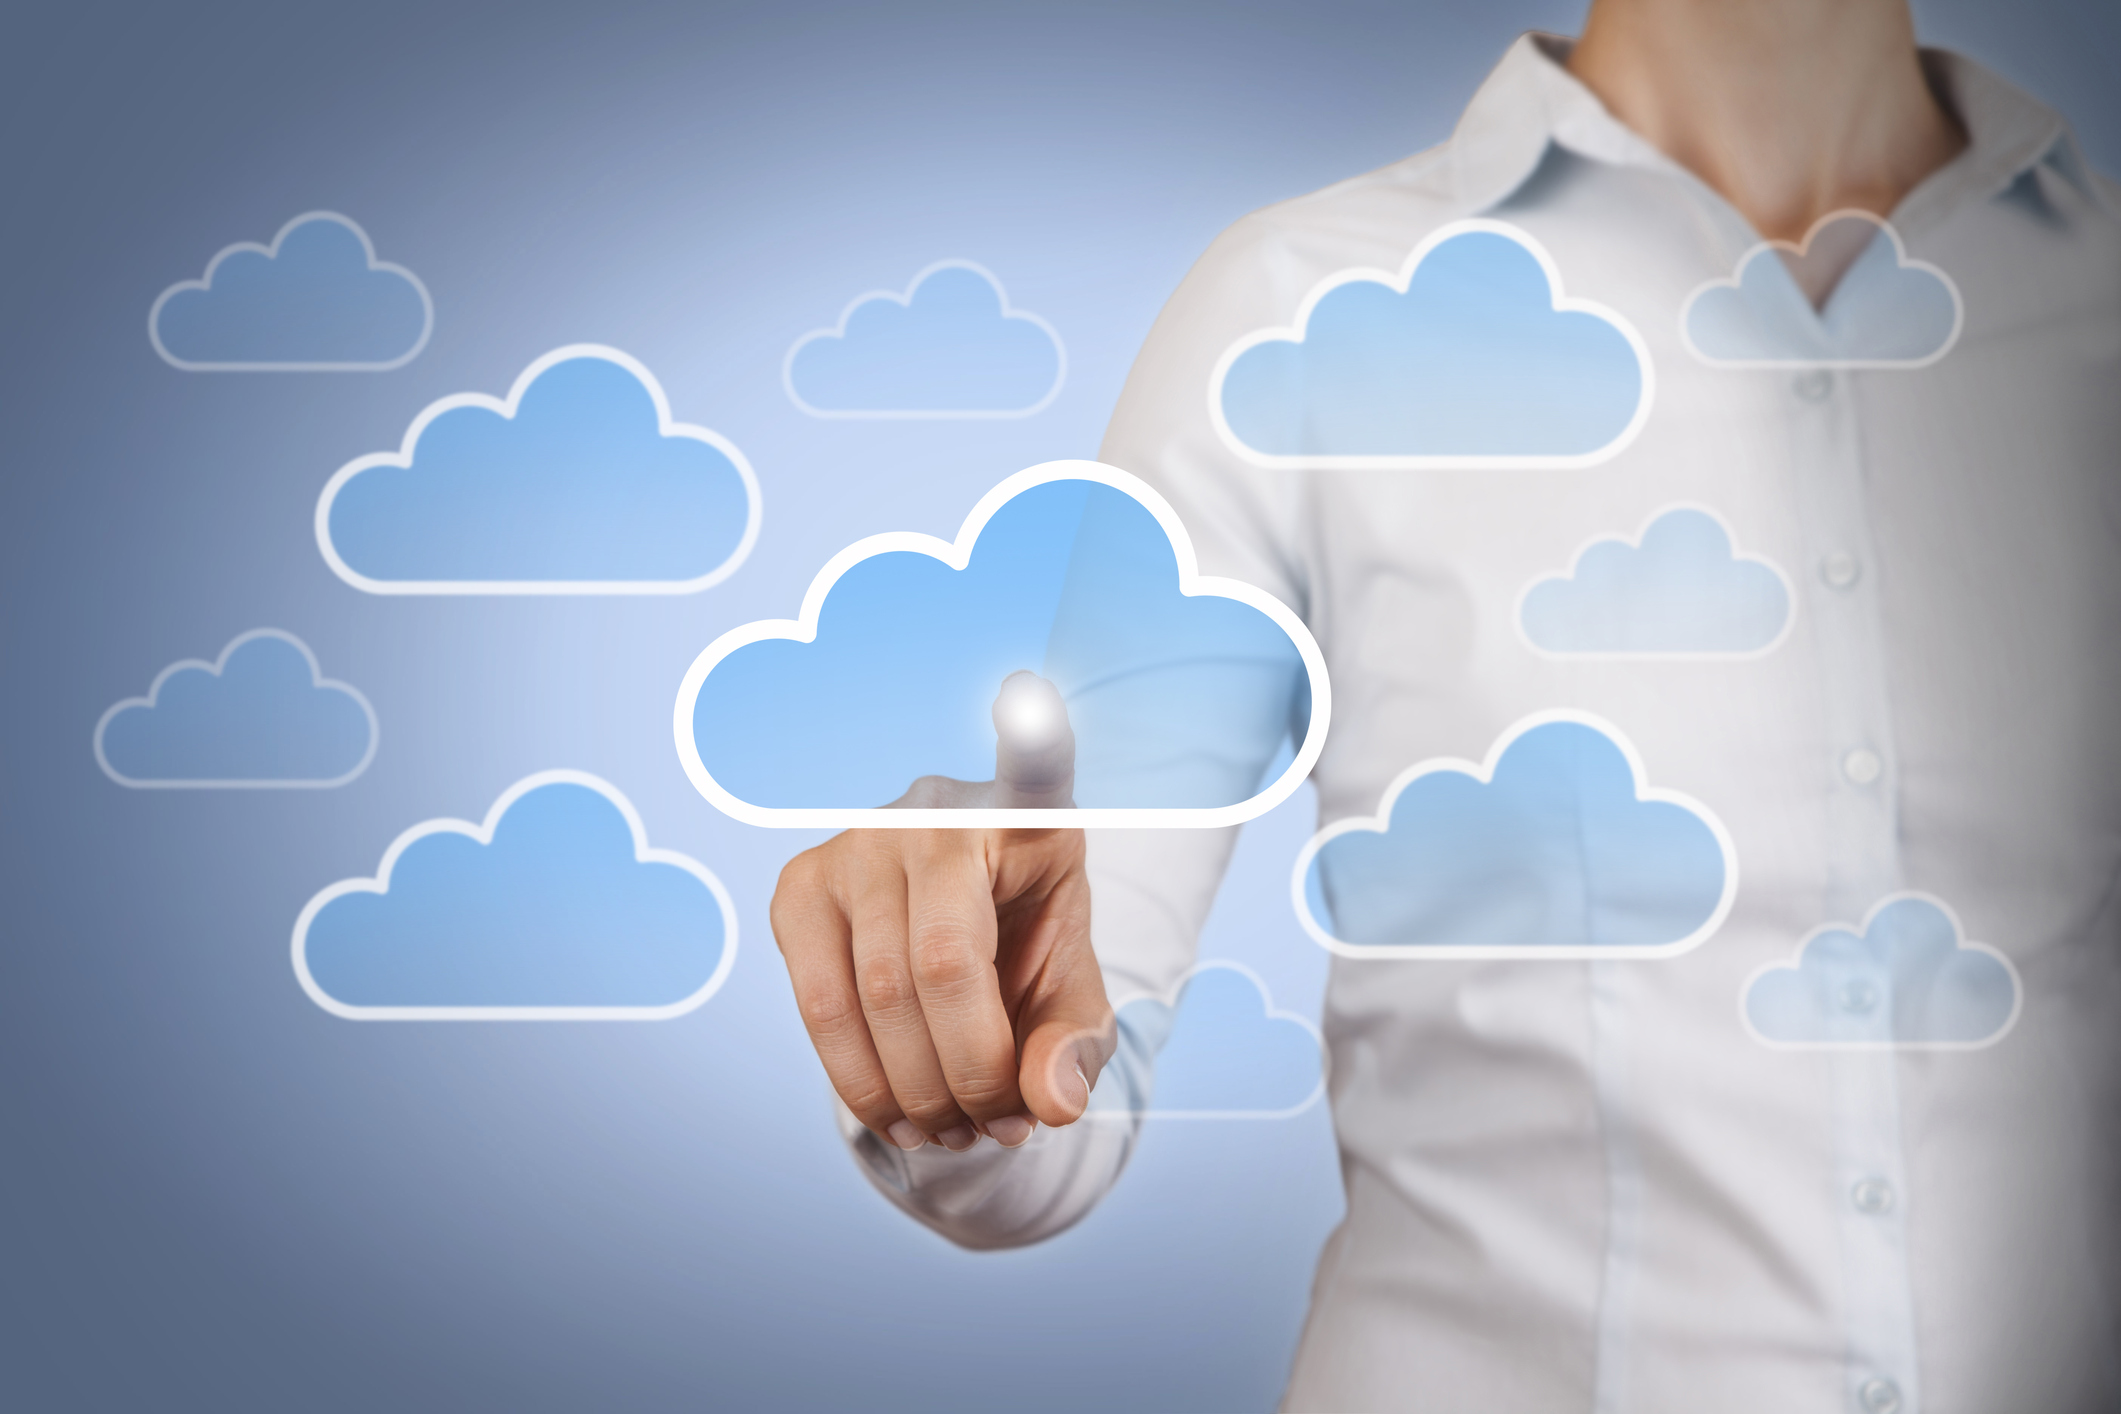 Huawei enables Cloud 2.0